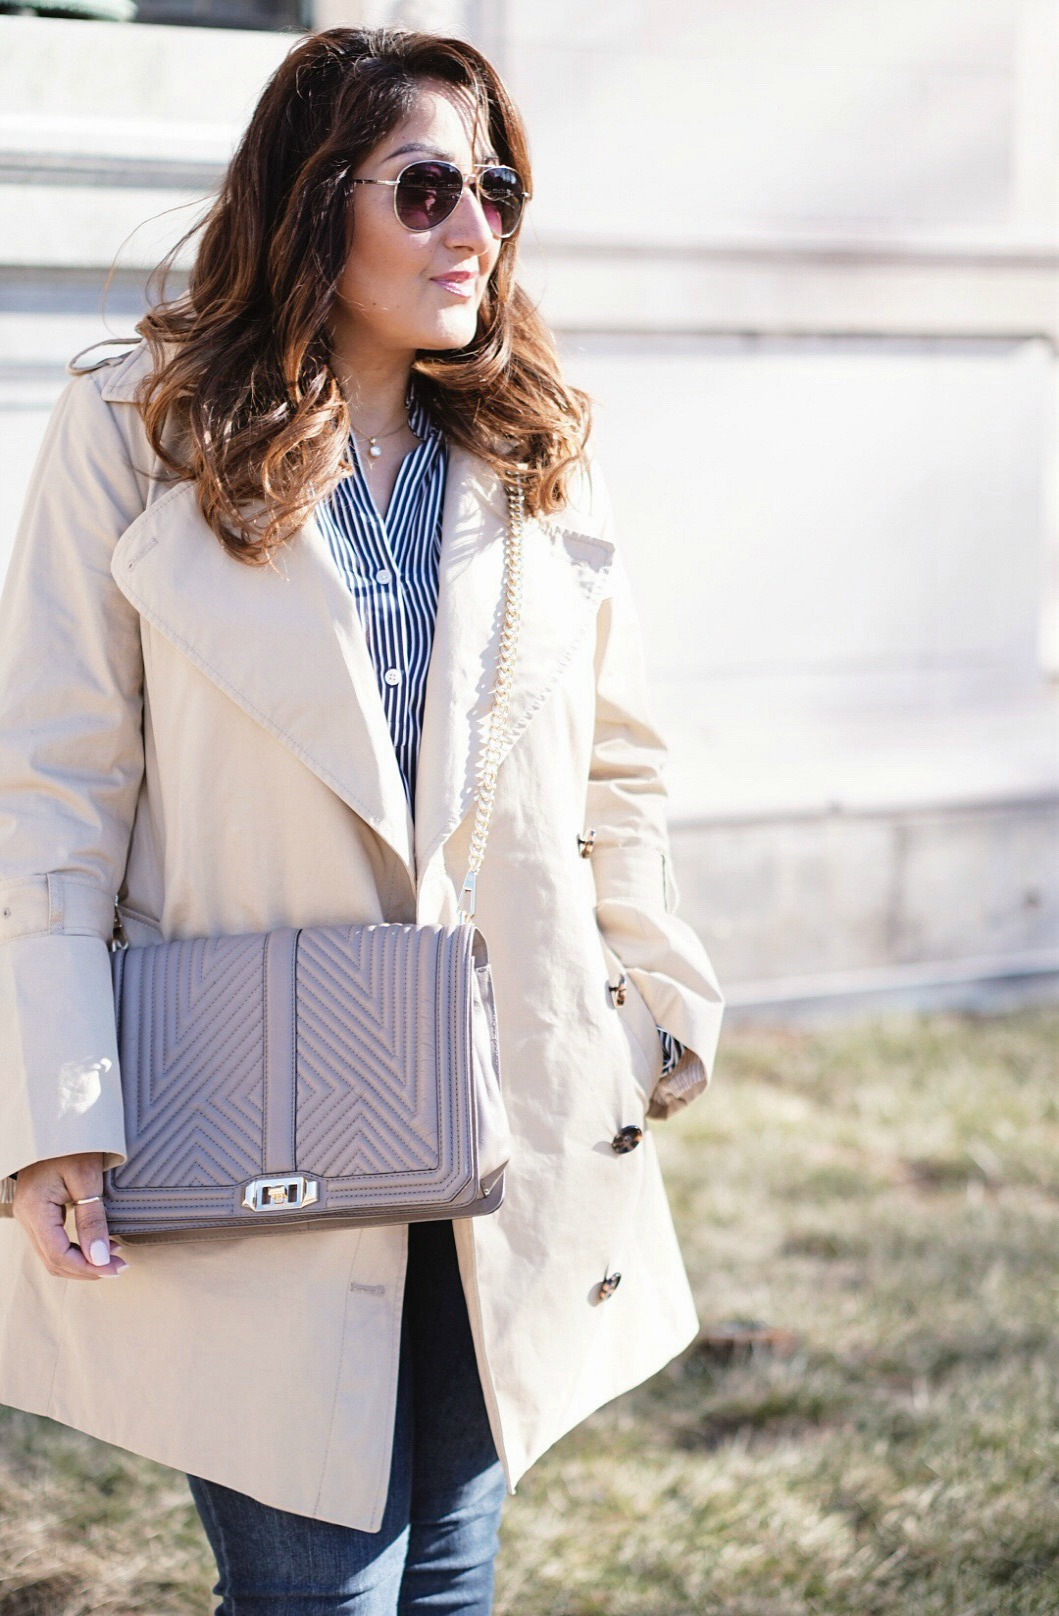 The trench coat for a casual outfit.